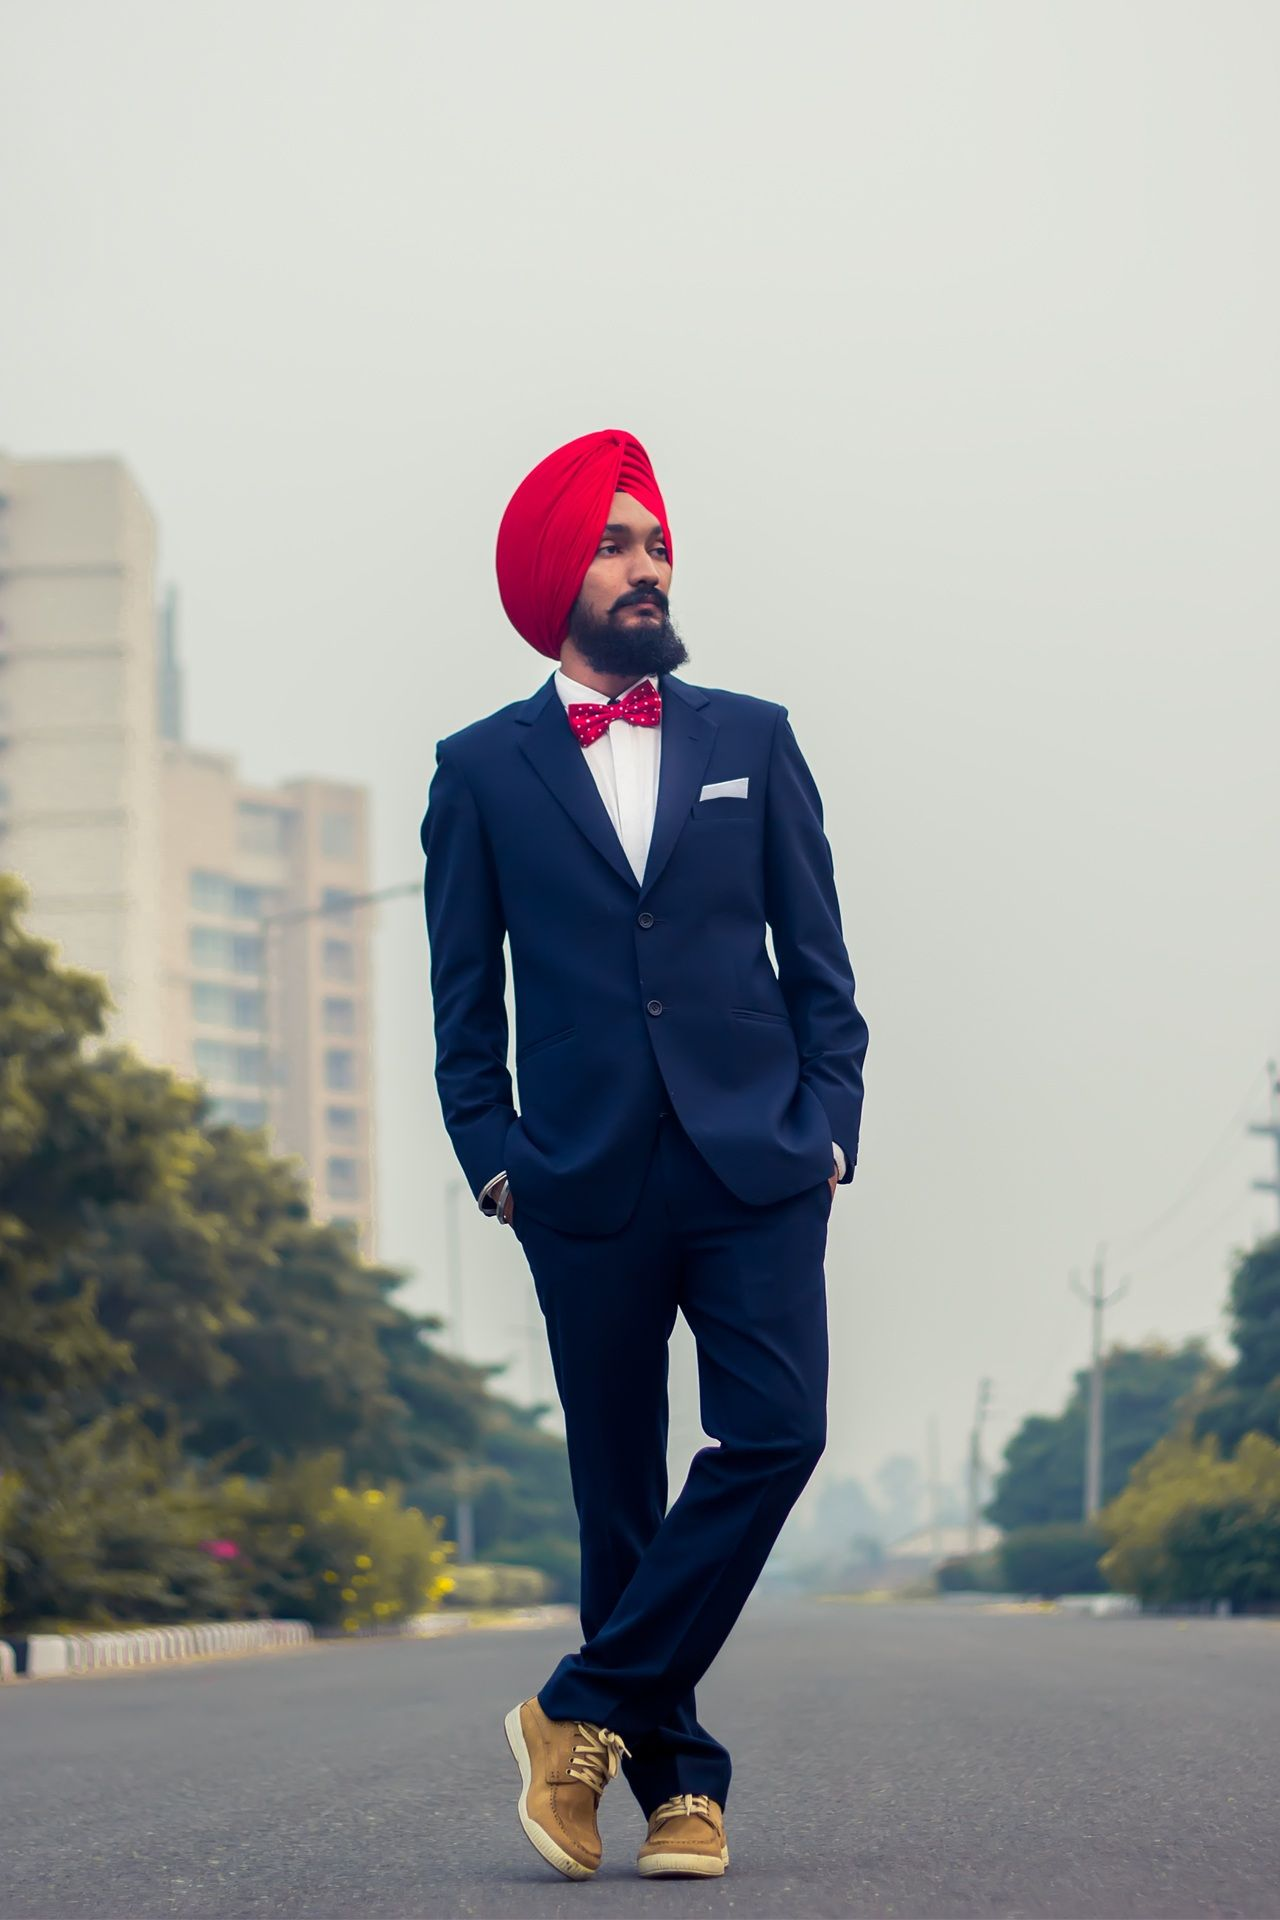 Art Sikh Fashion Color Red White Dark Blue Suit Bow Tie Turban